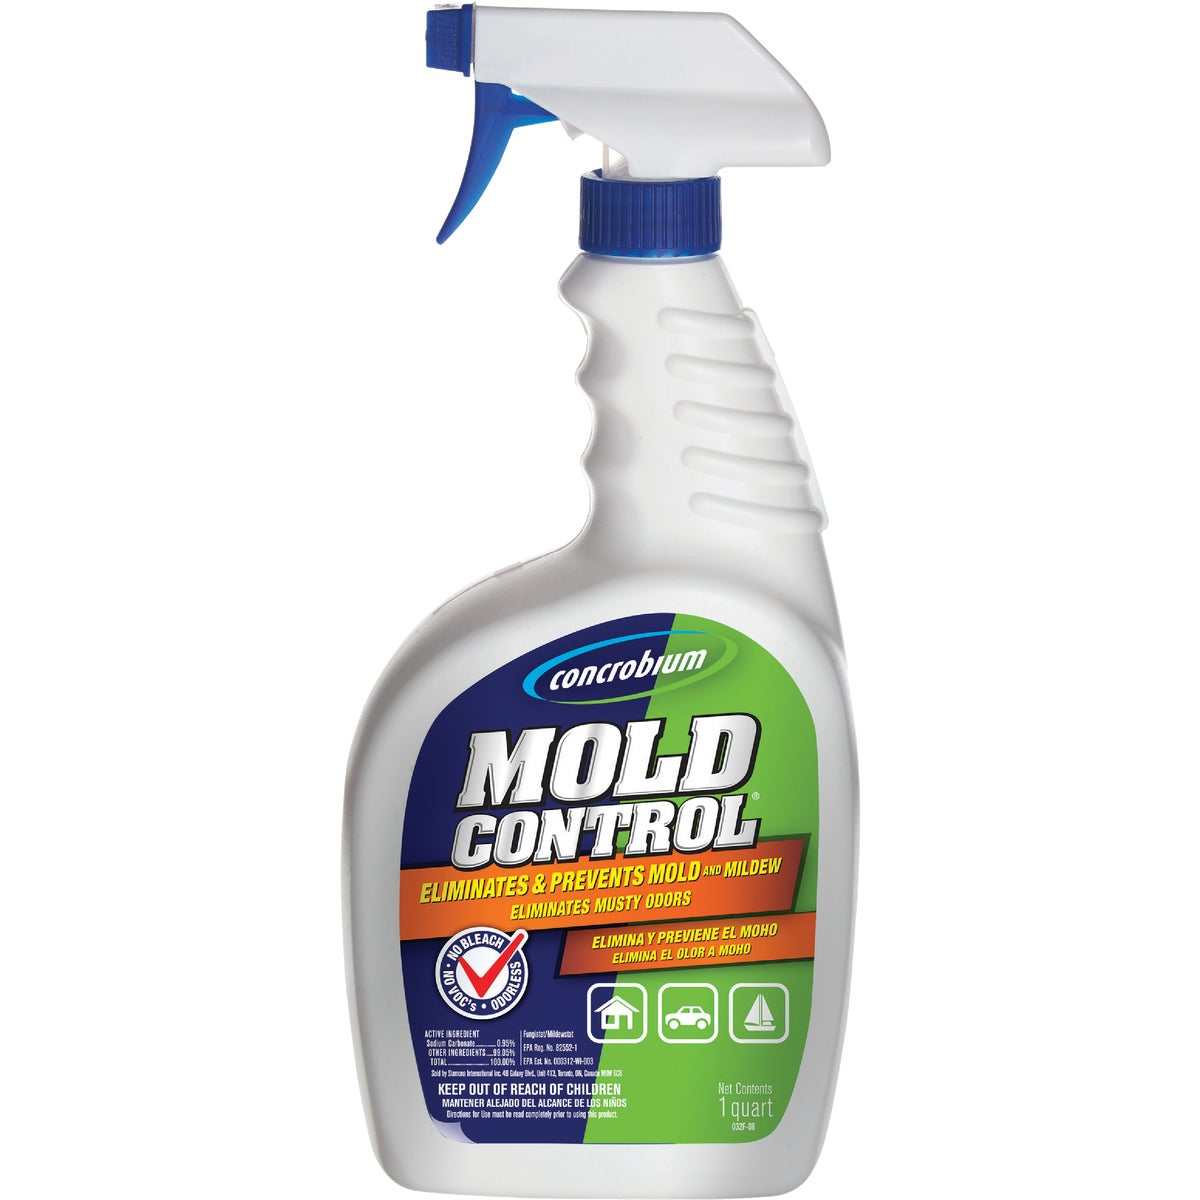 32OZ MOLD CONTROL - 025-326 by Siamons Intl